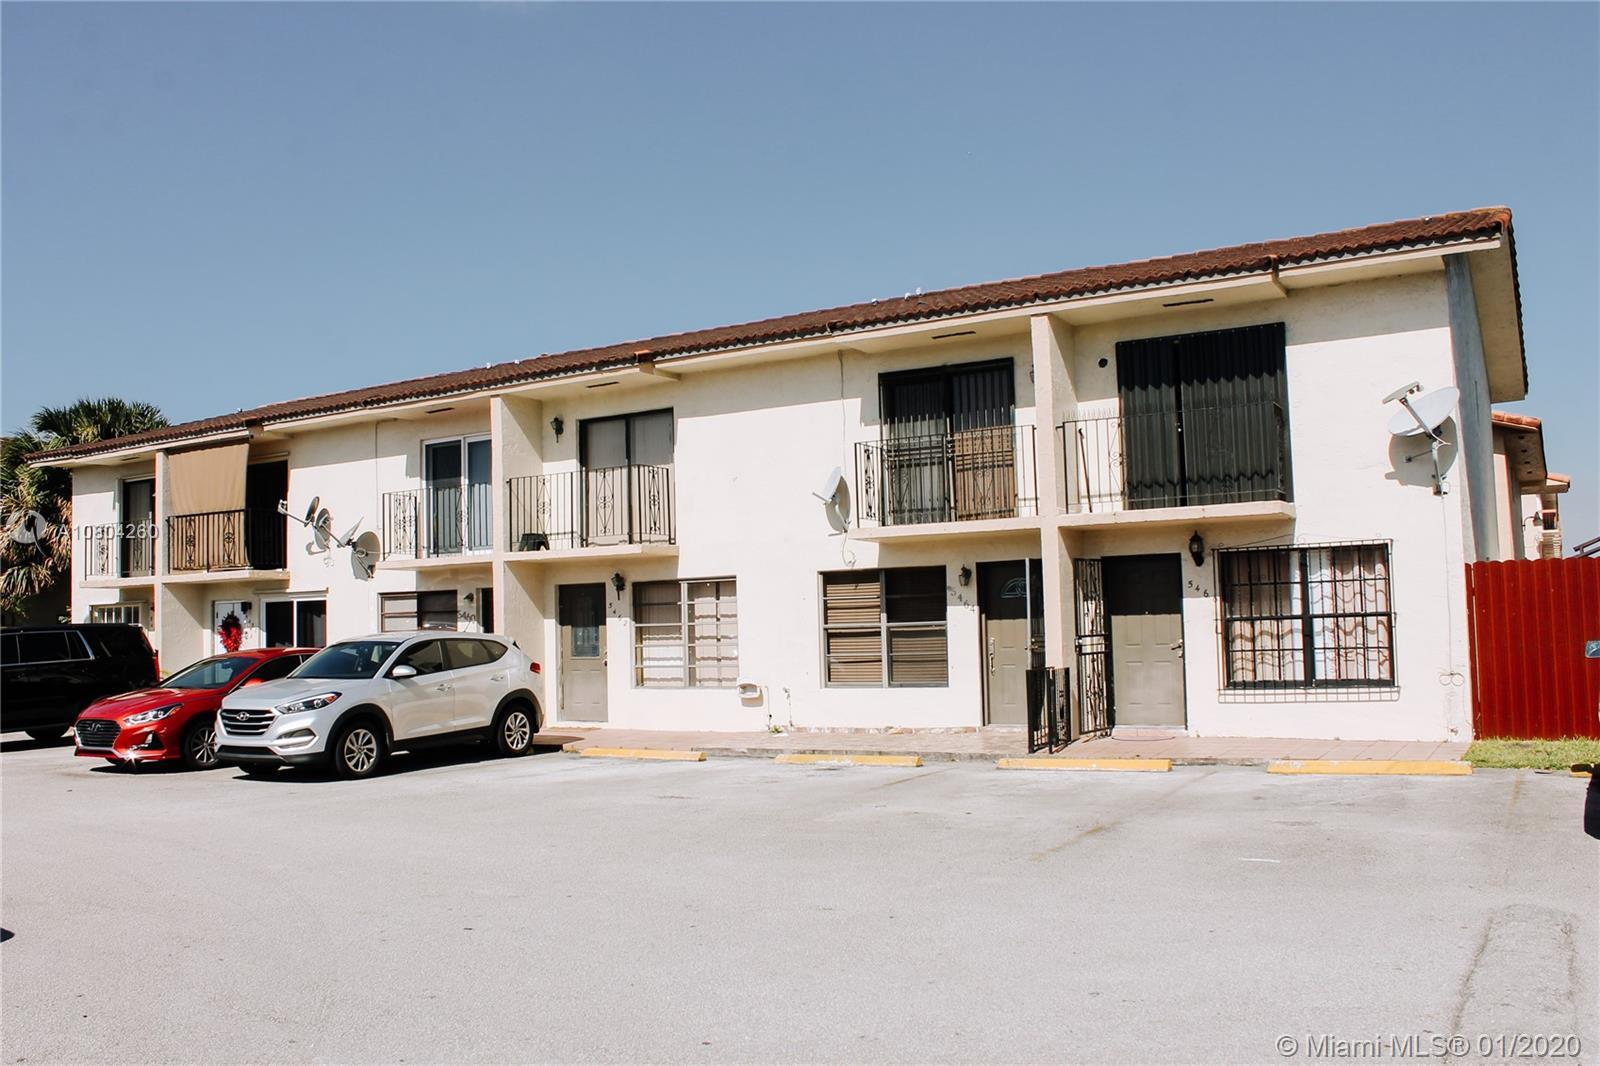 Great opportunity for investors and end users to purchase this property with 2 bedrooms and 1/1 bath